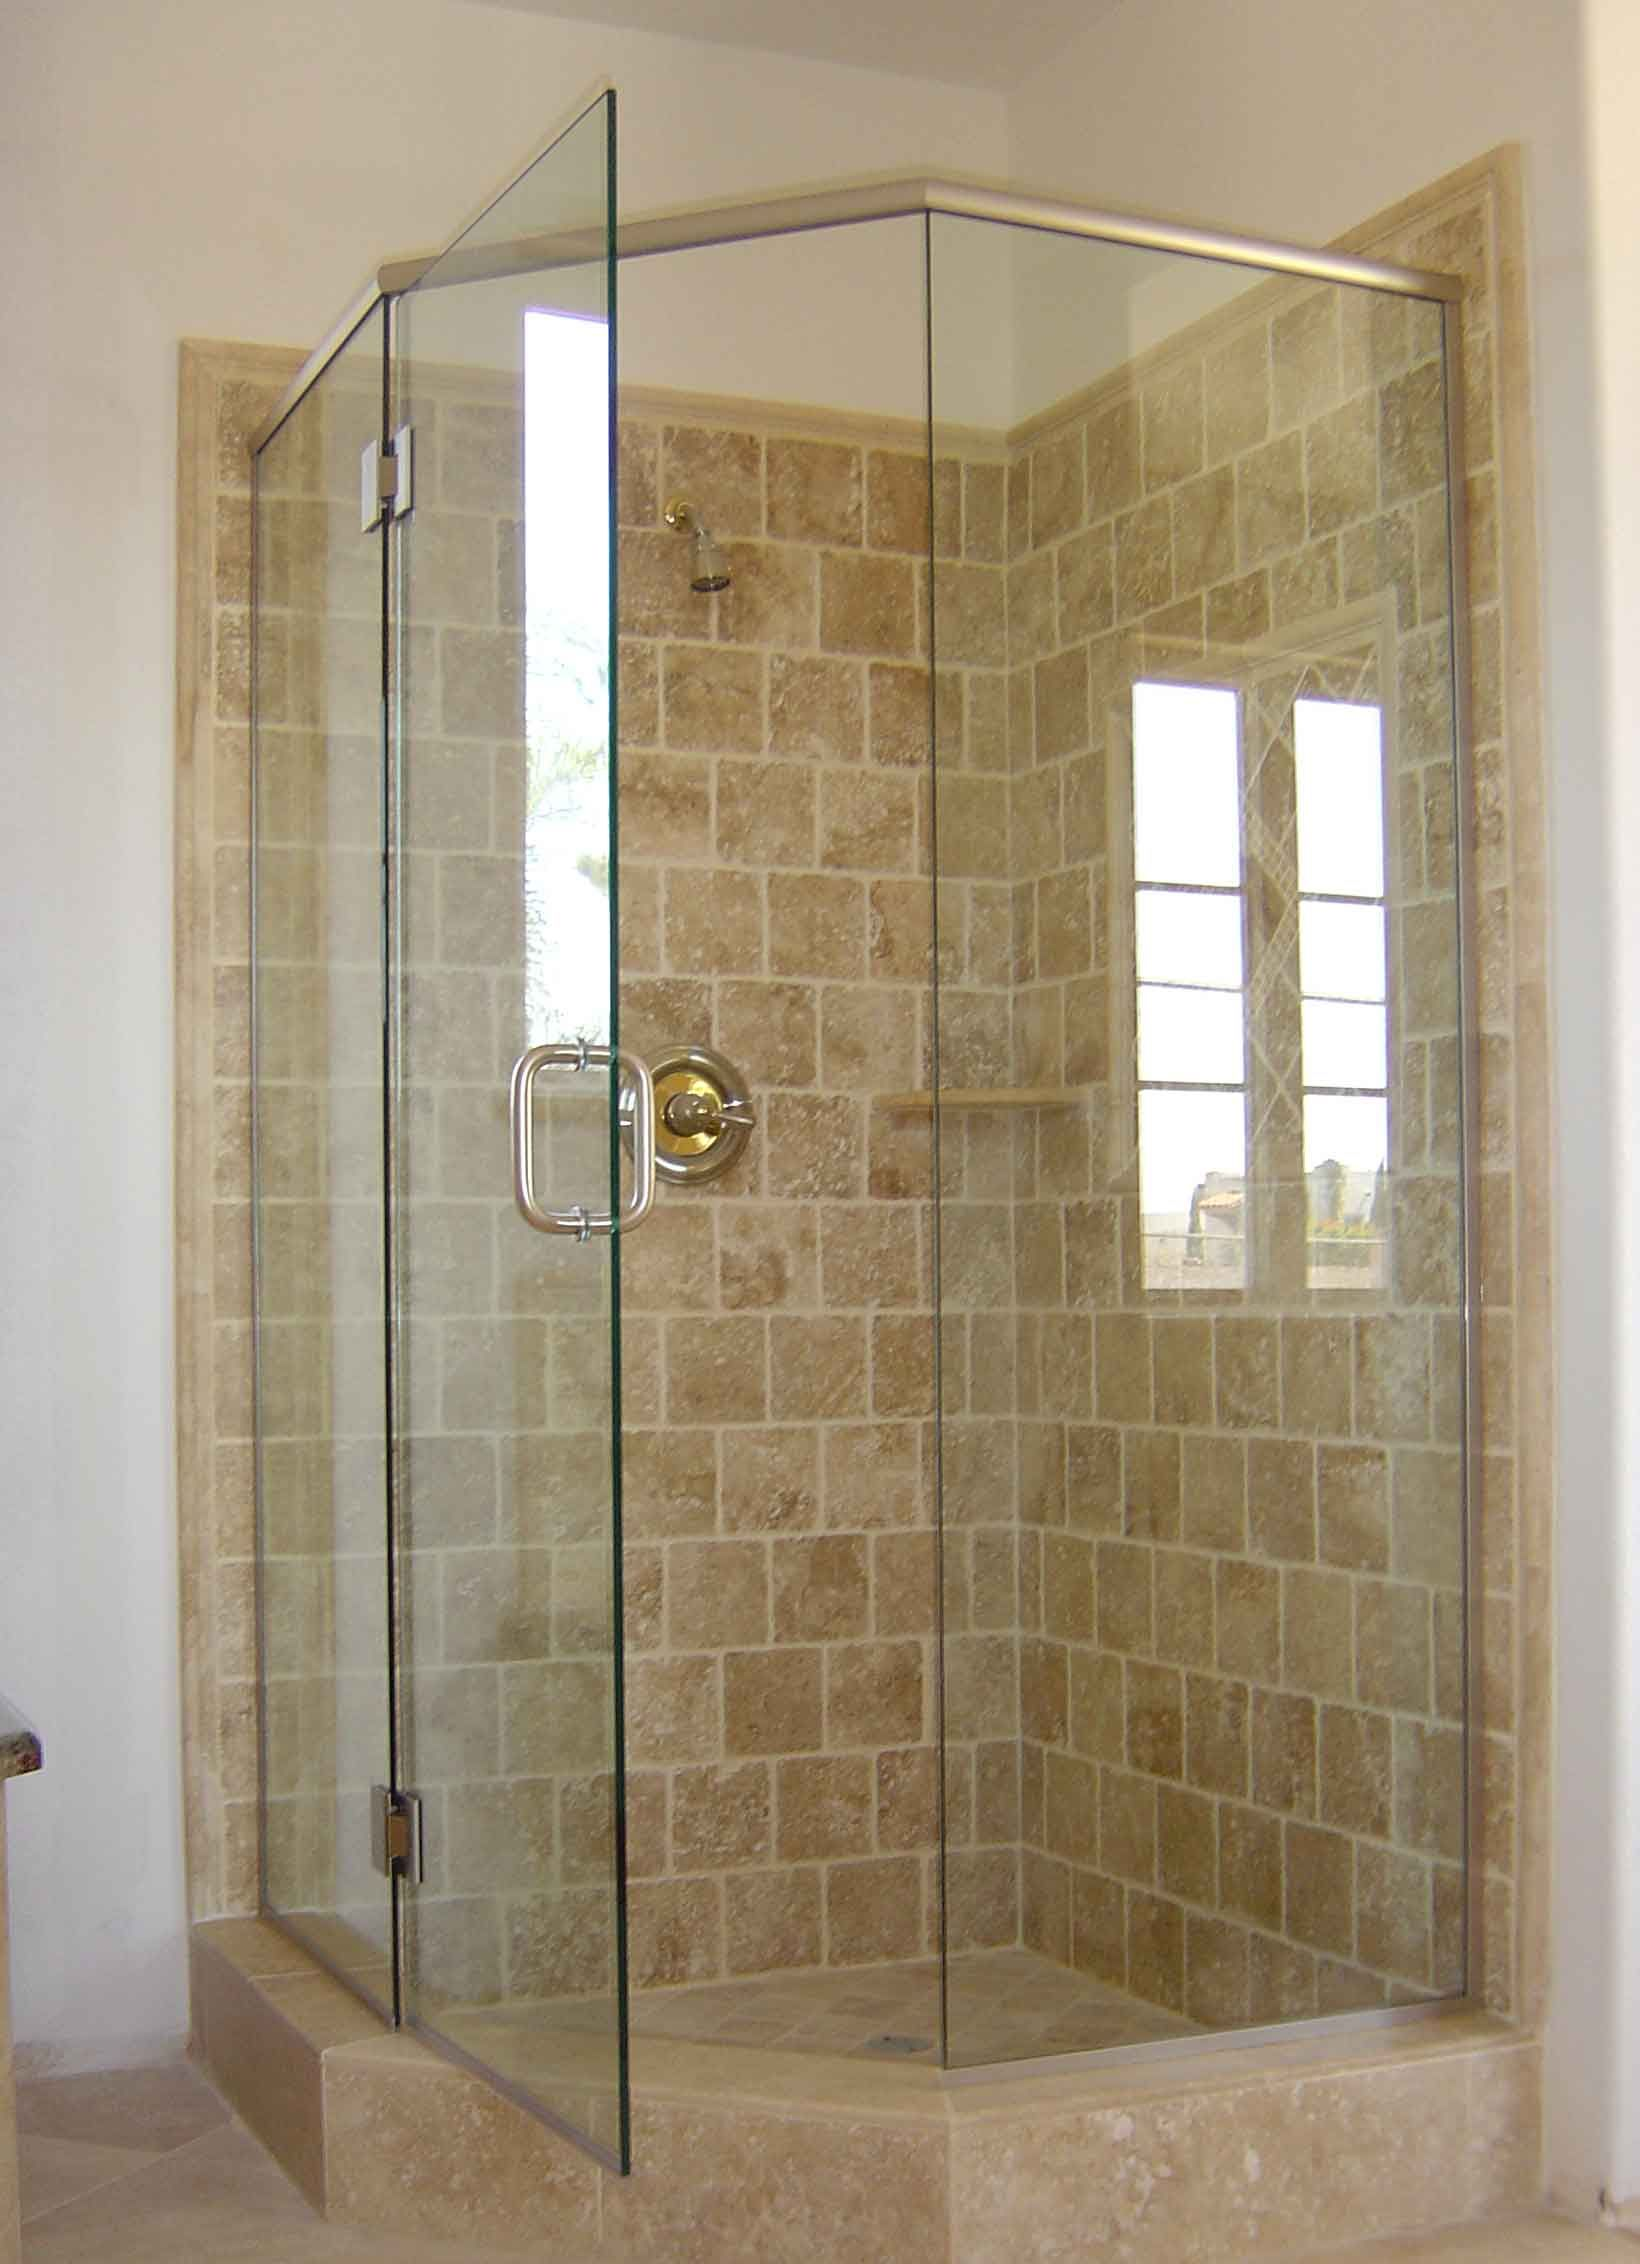 Upstairs bathroom corner shower pinteres for Tiny bathroom shower ideas